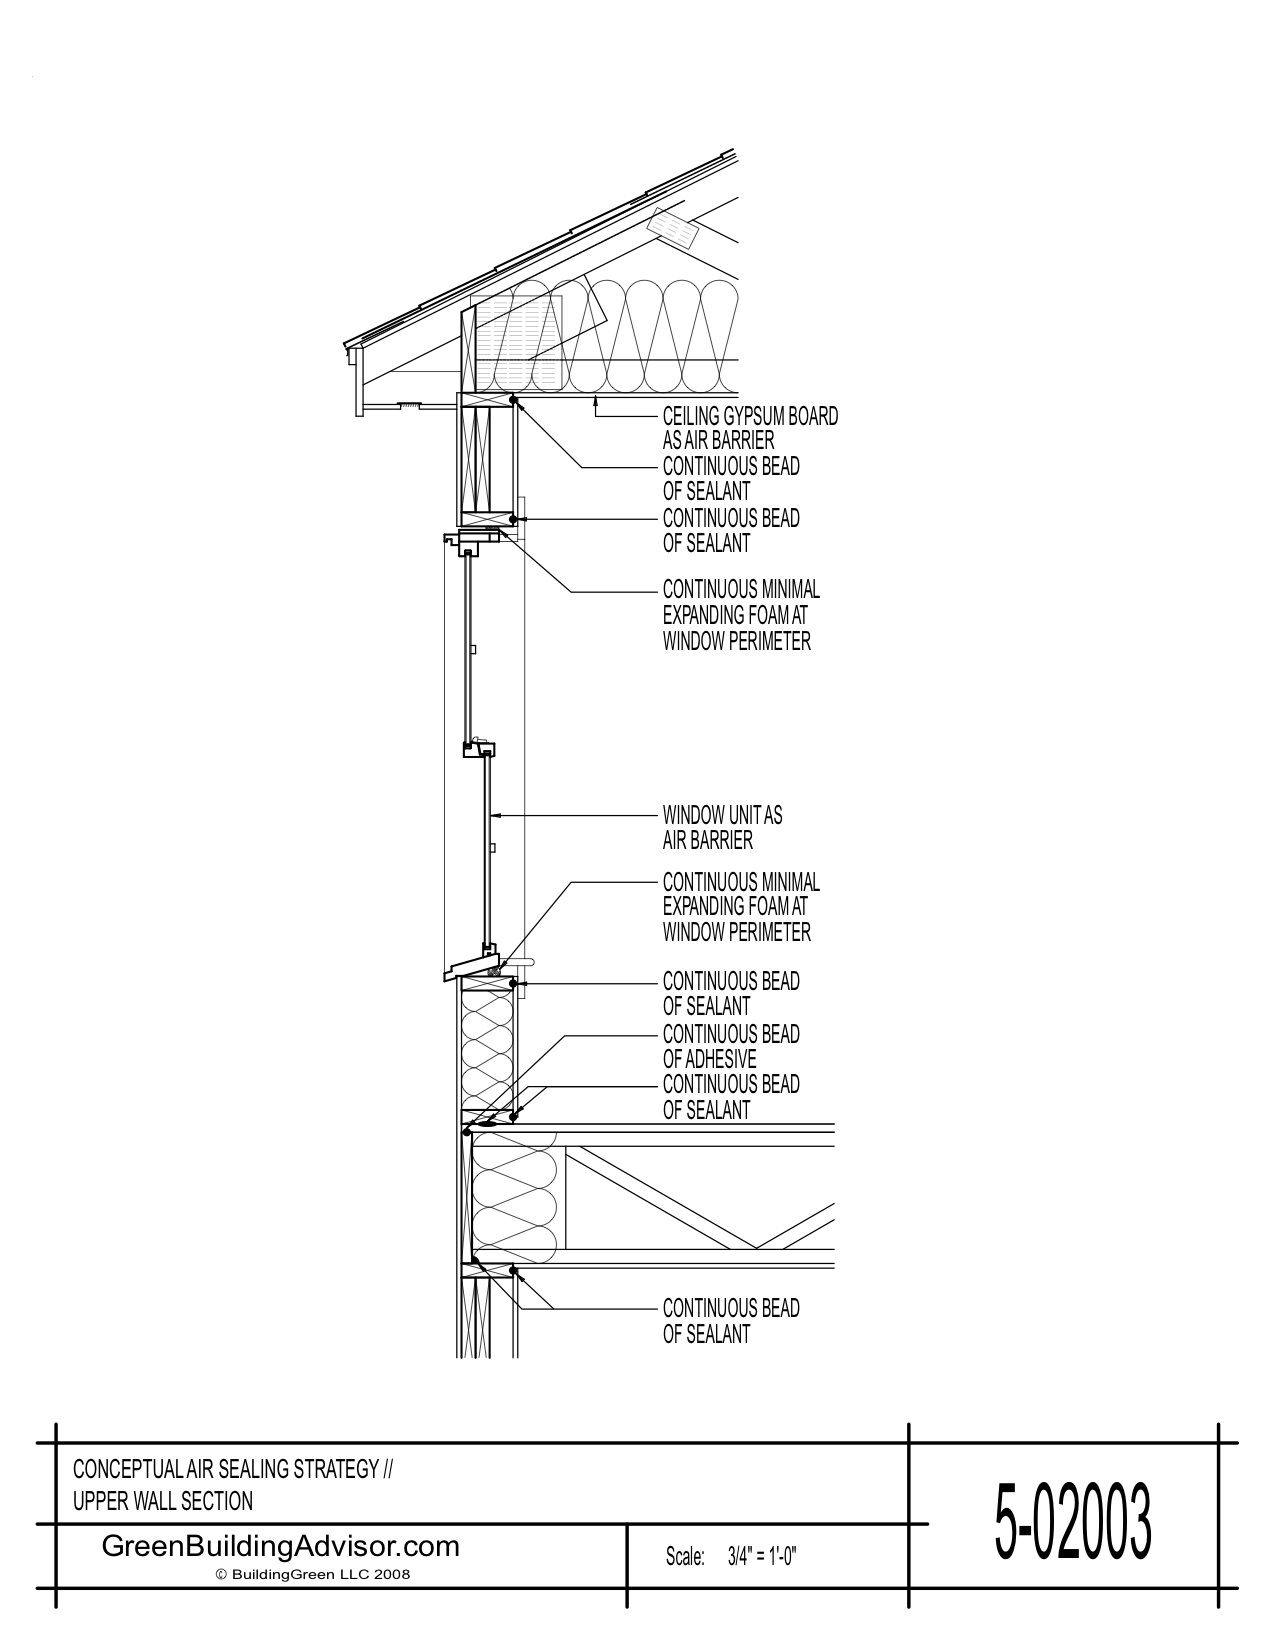 The Air Barrier Is Continuous Across Several Components Of